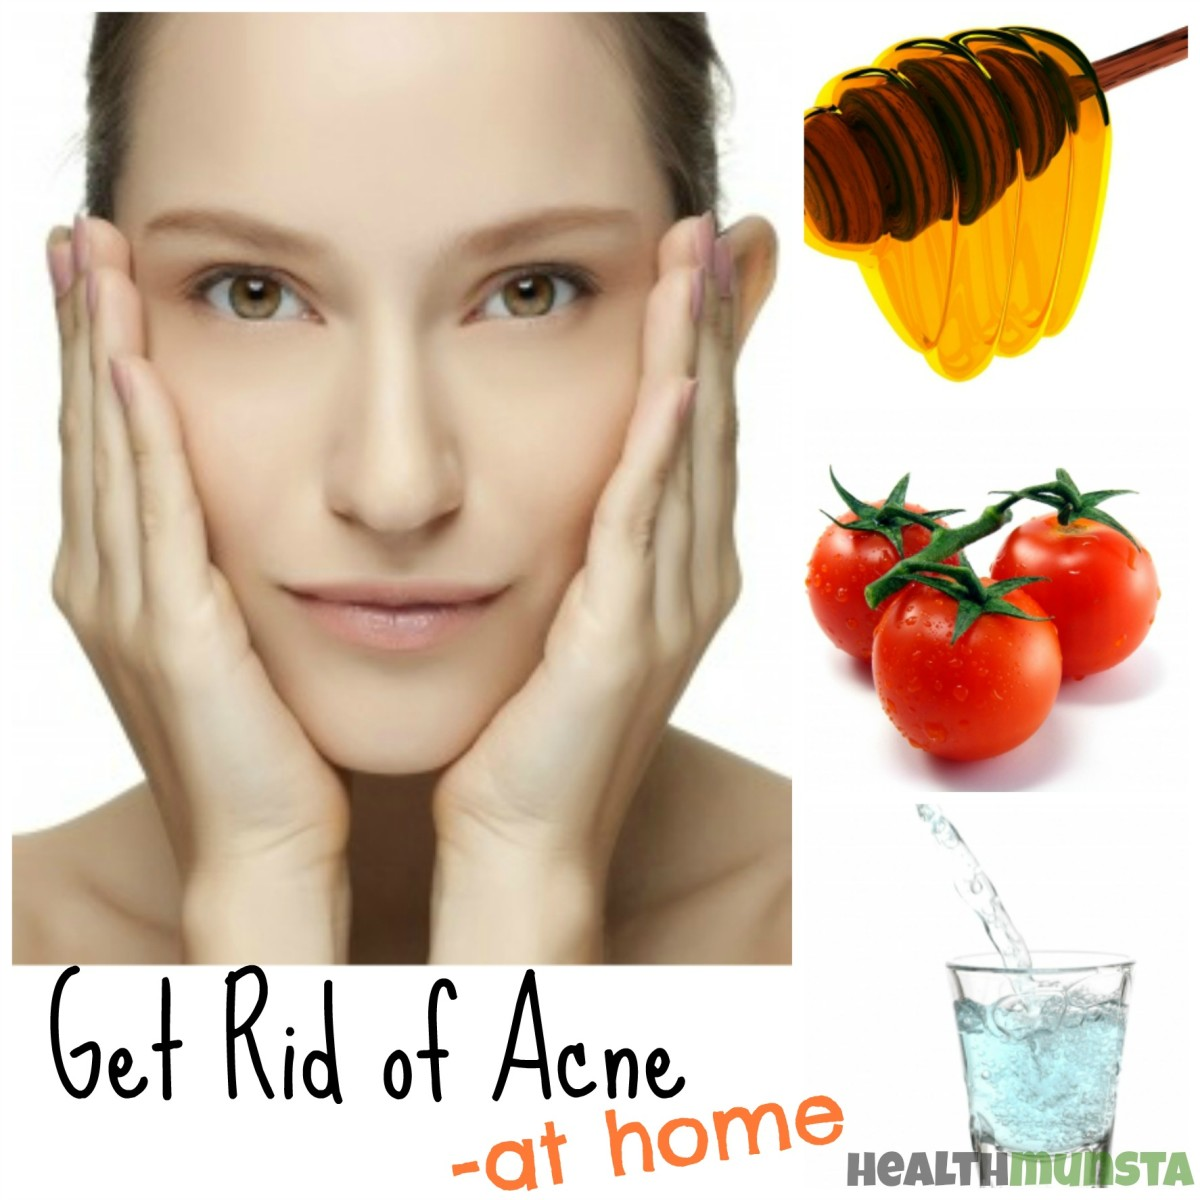 How to get rid of acne in 2 days naturally